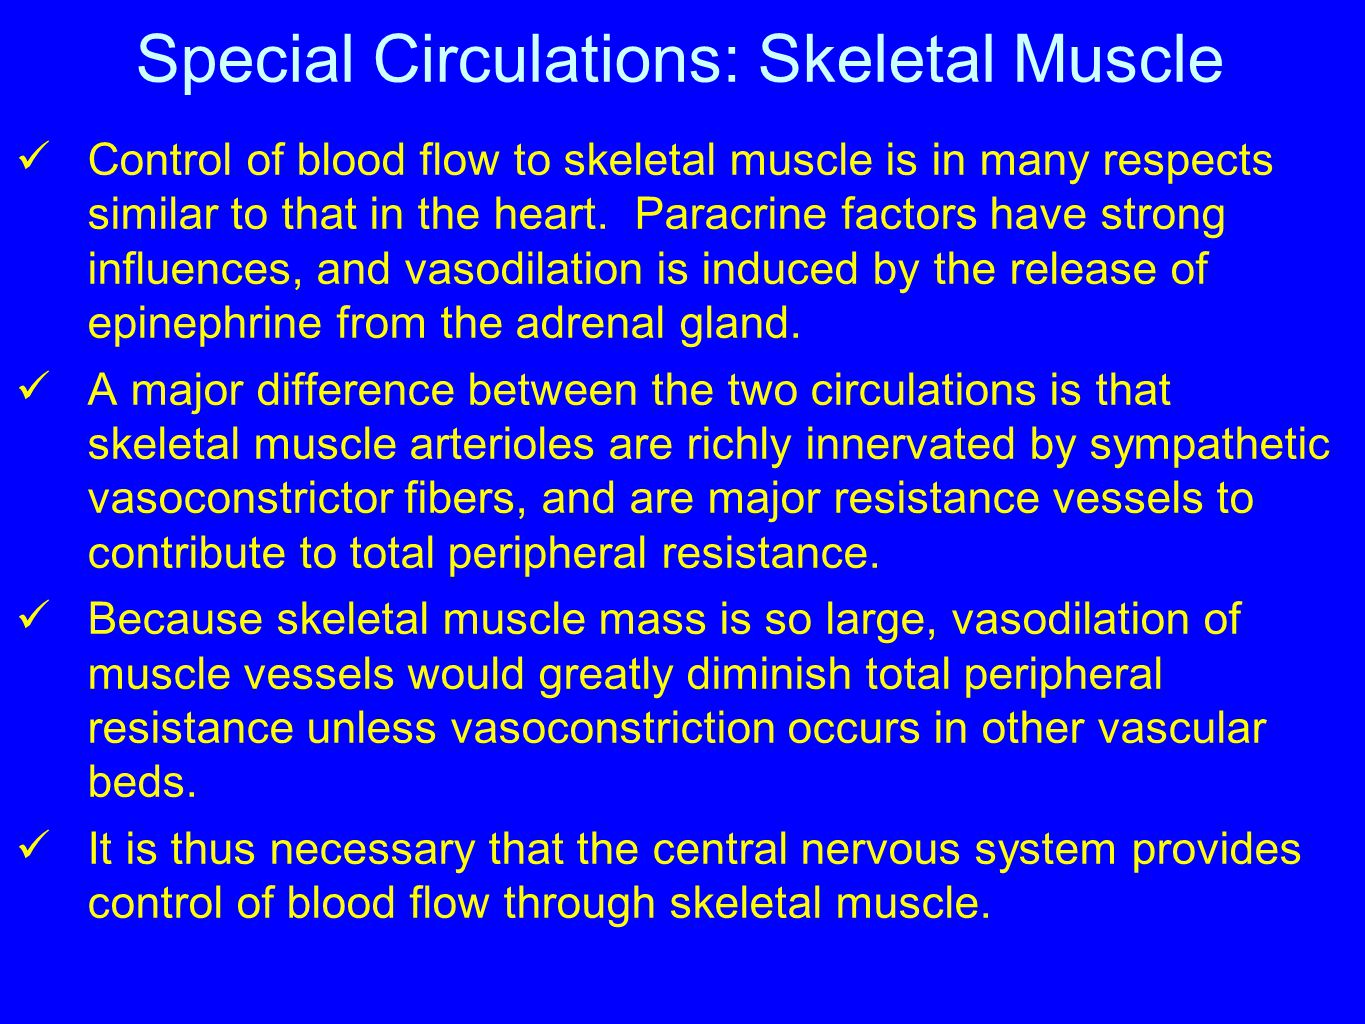 Special Circulations: Skeletal Muscle Control of blood flow to skeletal muscle is in many respects similar to that in the heart. Paracrine factors hav